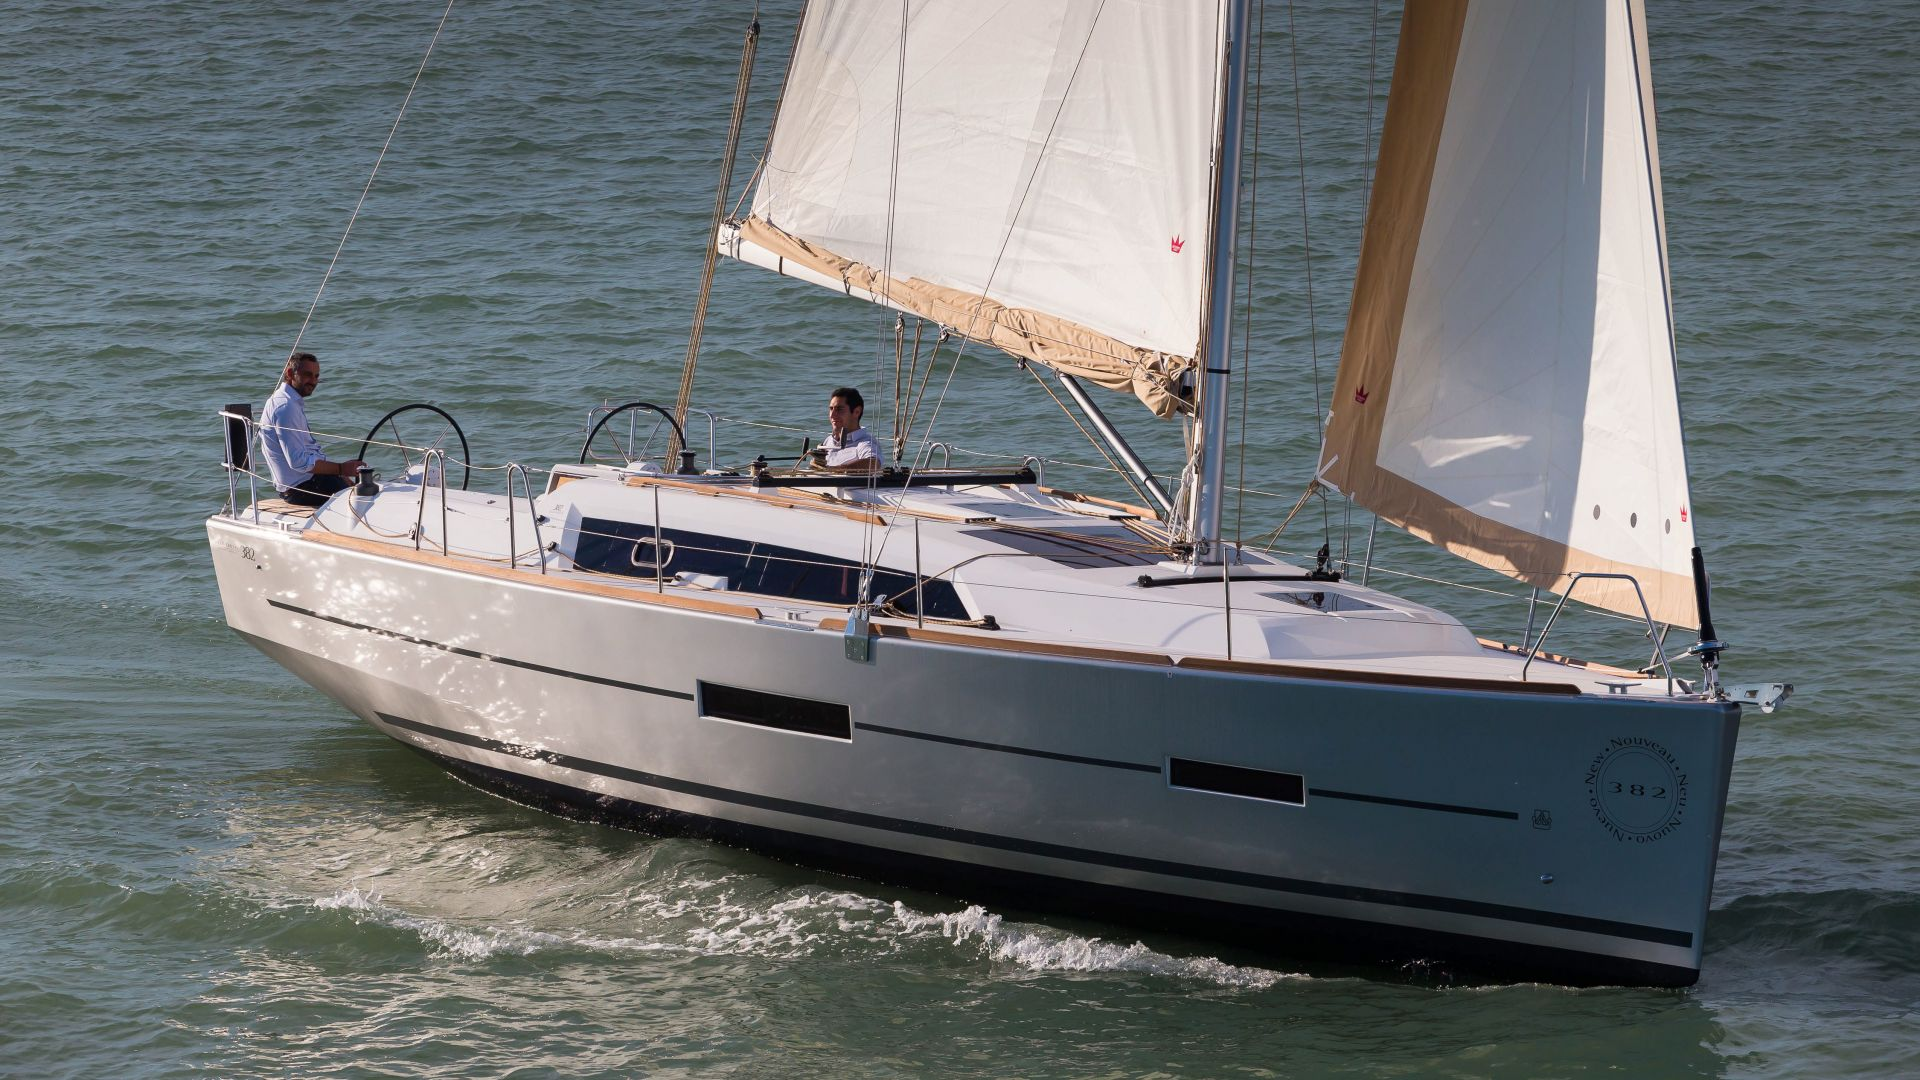 Dufour 382 Class - Sailing Yacht for Charter in Greece